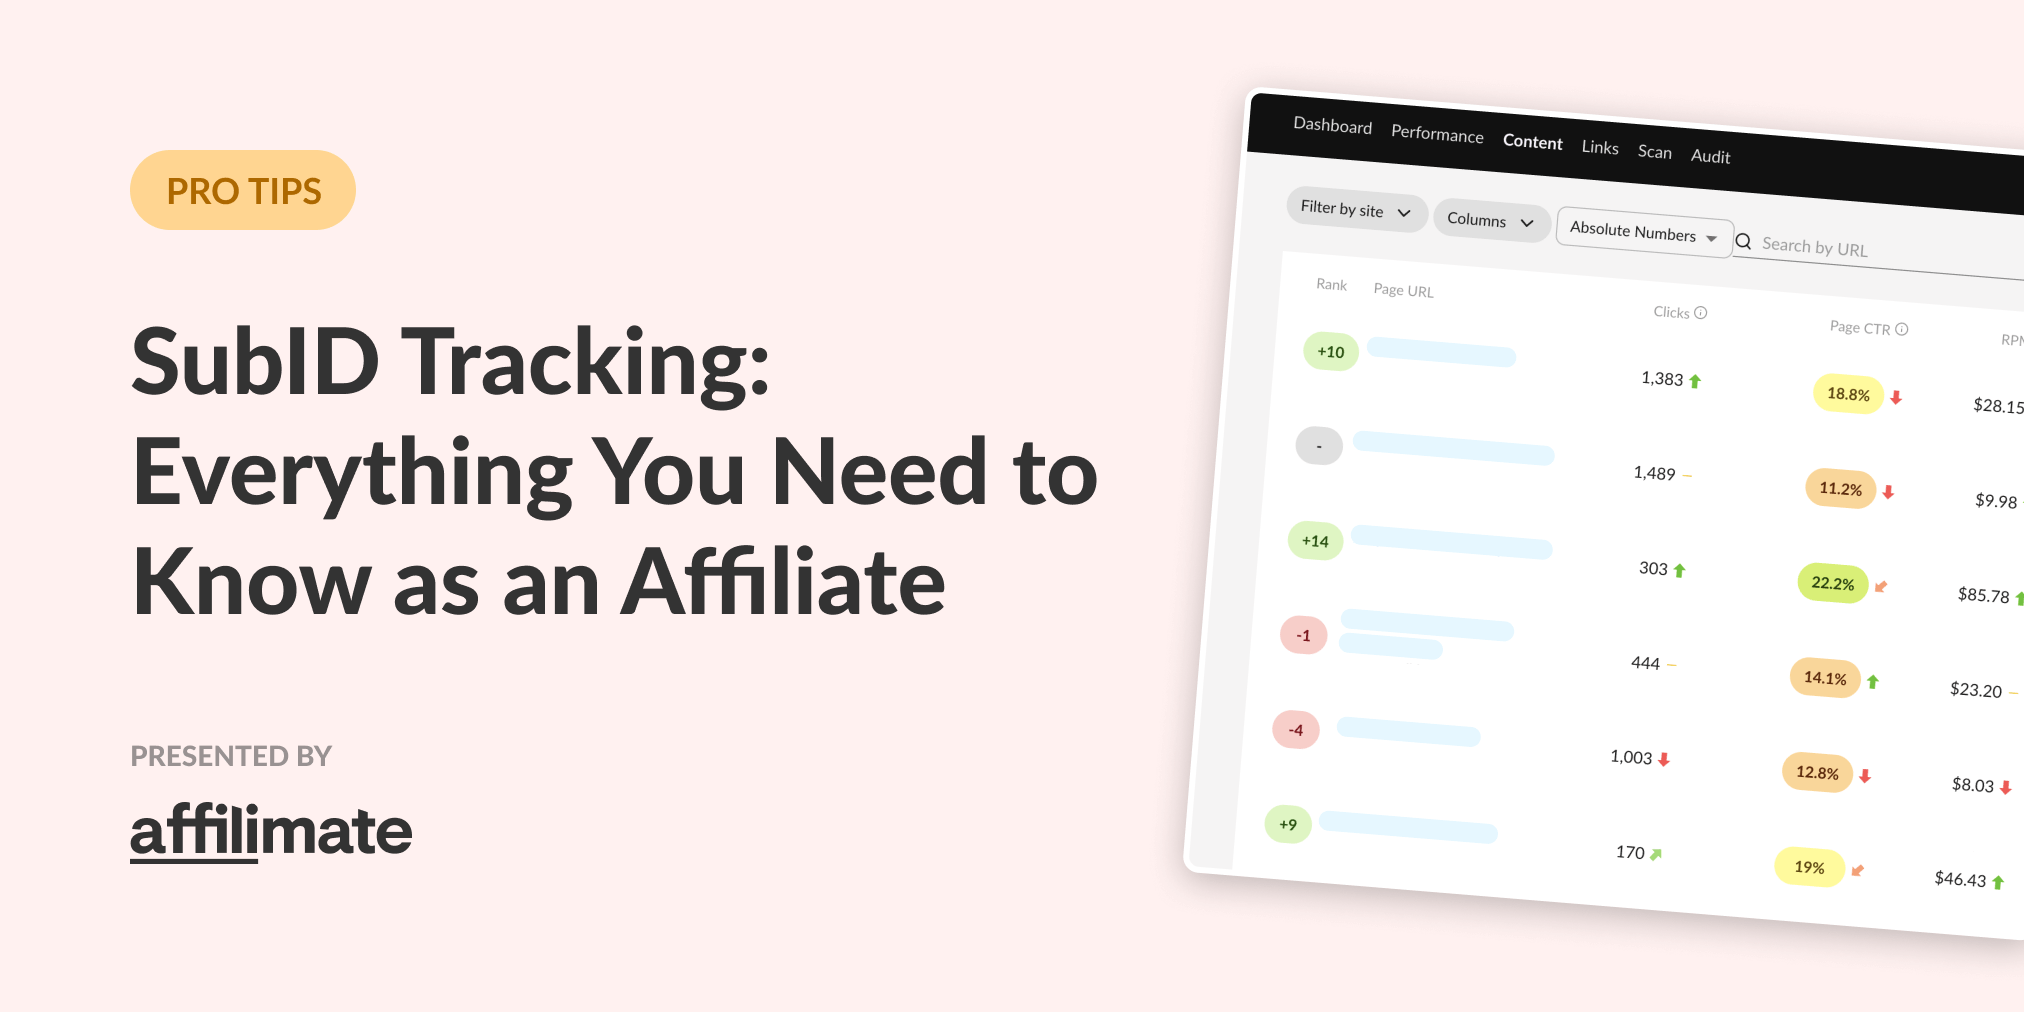 SubID Tracking for Affiliates: Everything You Need to Know